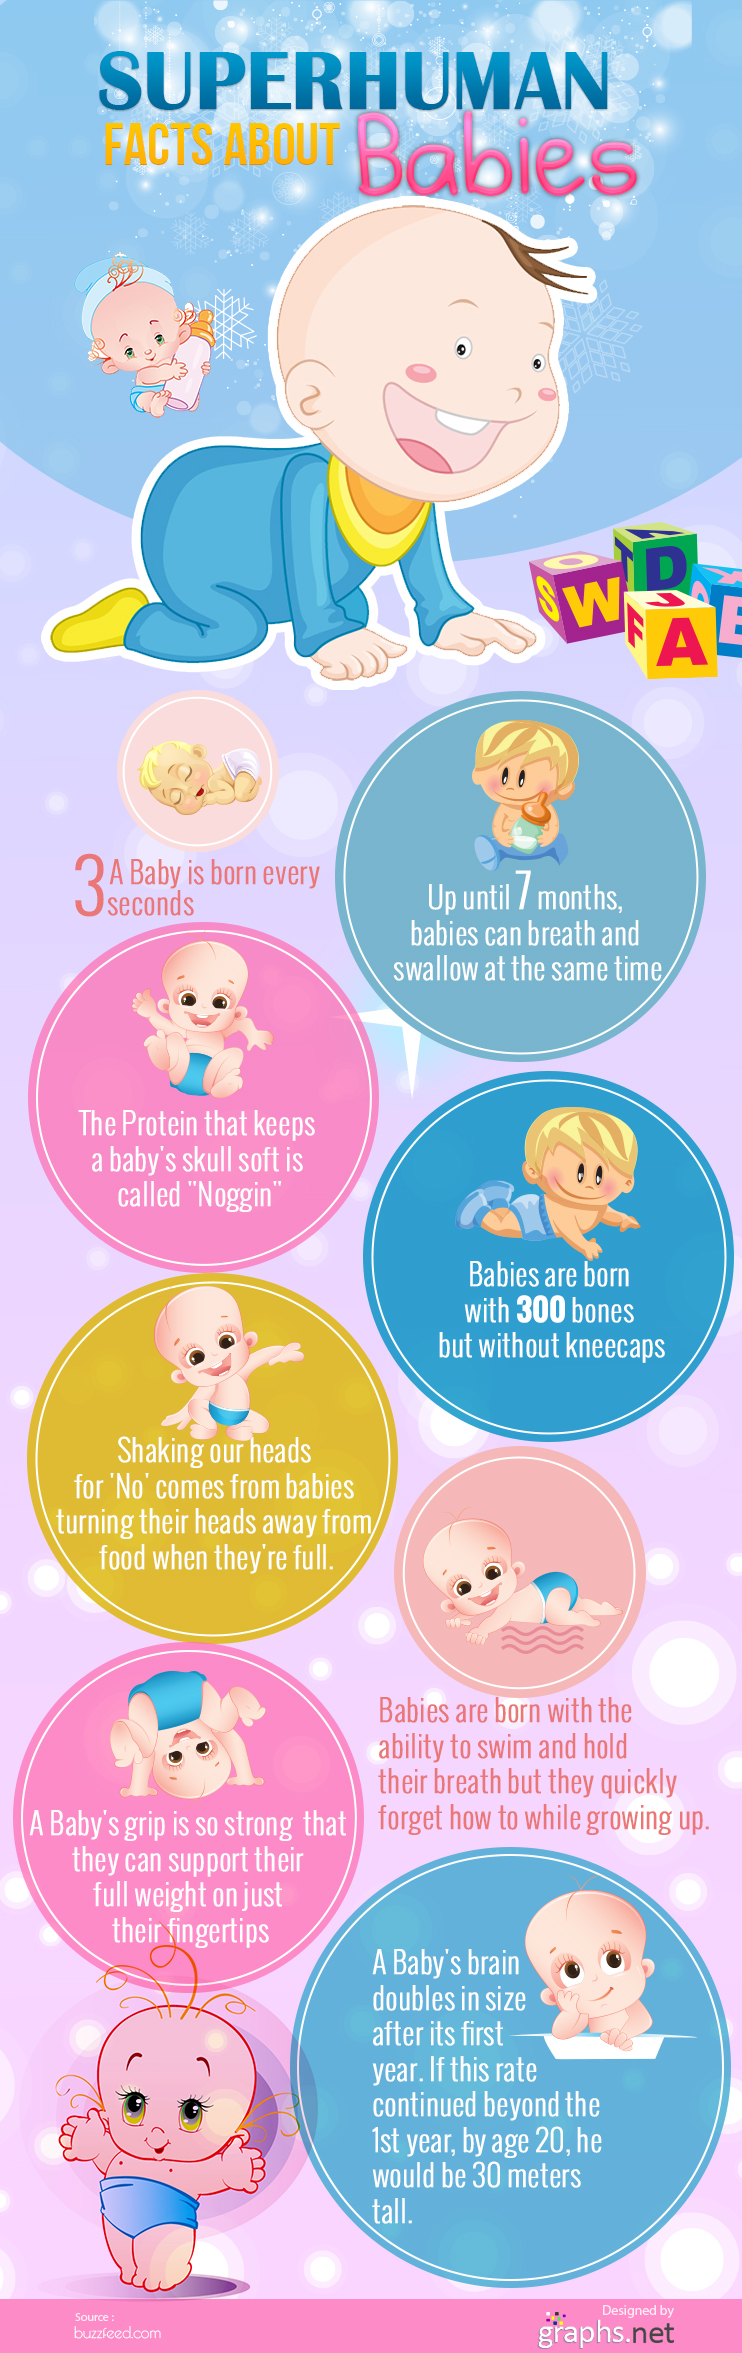 09 Superhuman Facts About Babies